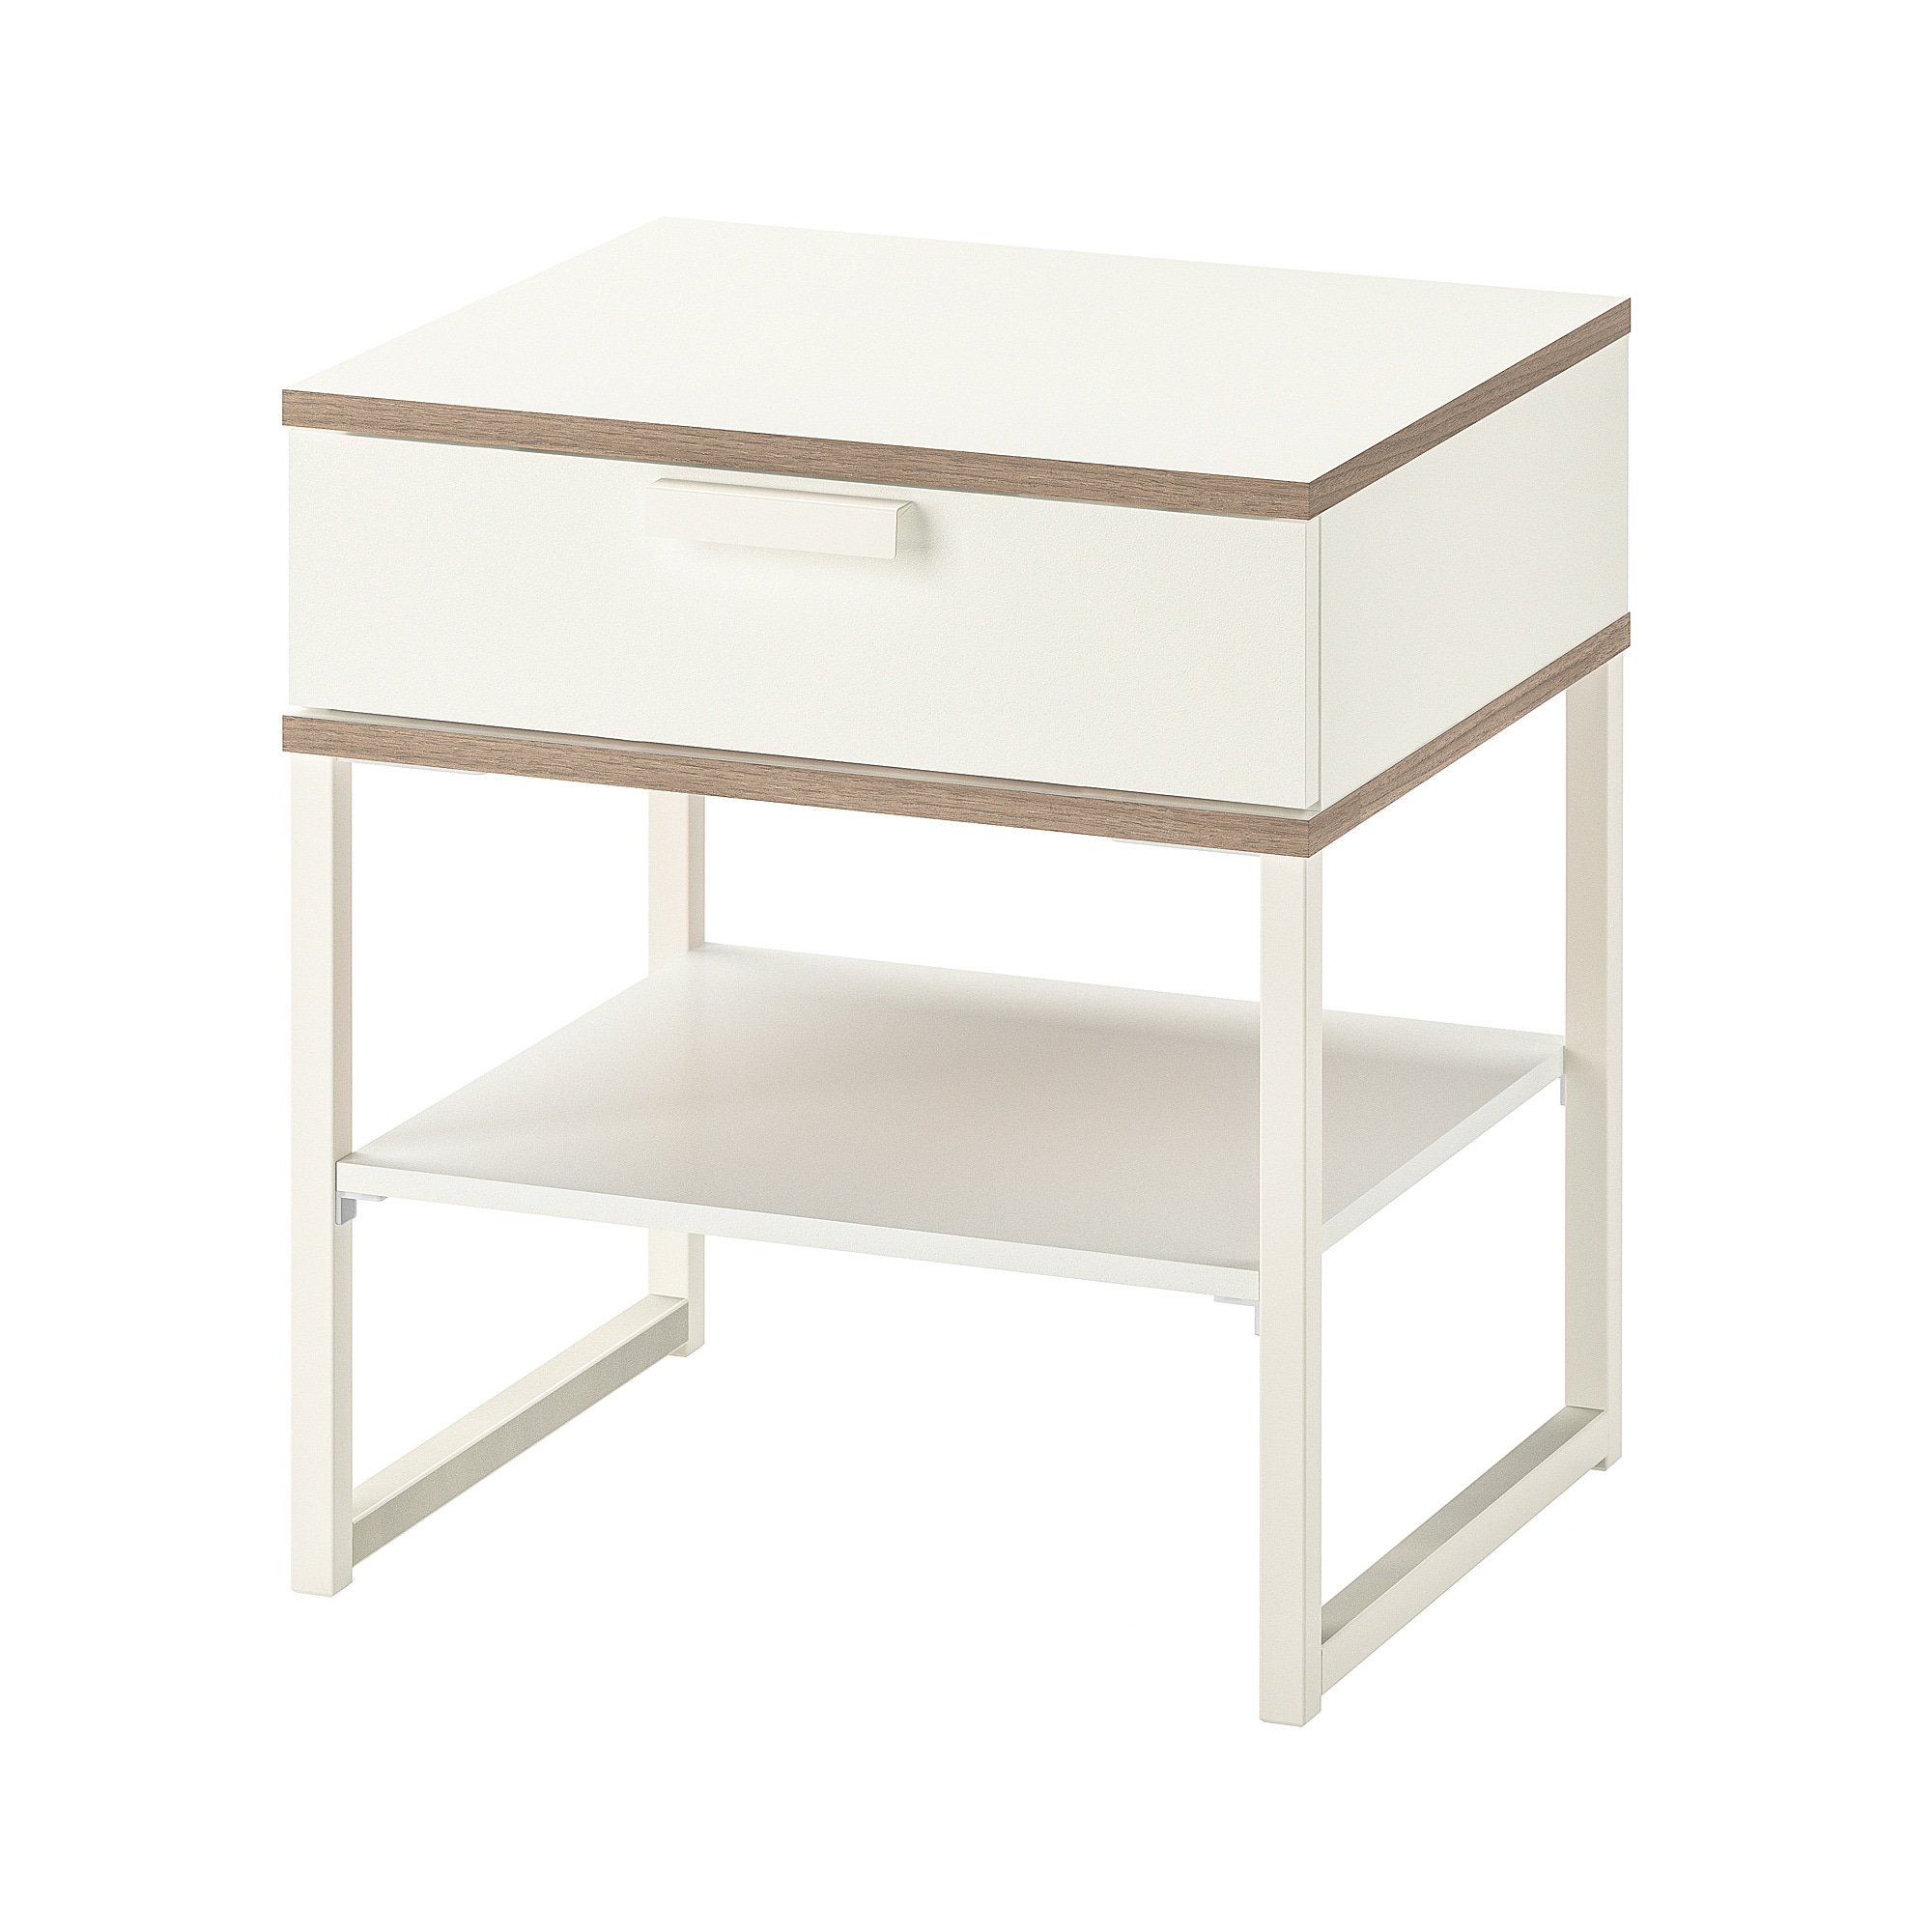 Table De Chevet Murale Ikea Table Chevet Trysil Blanc Gris Clair